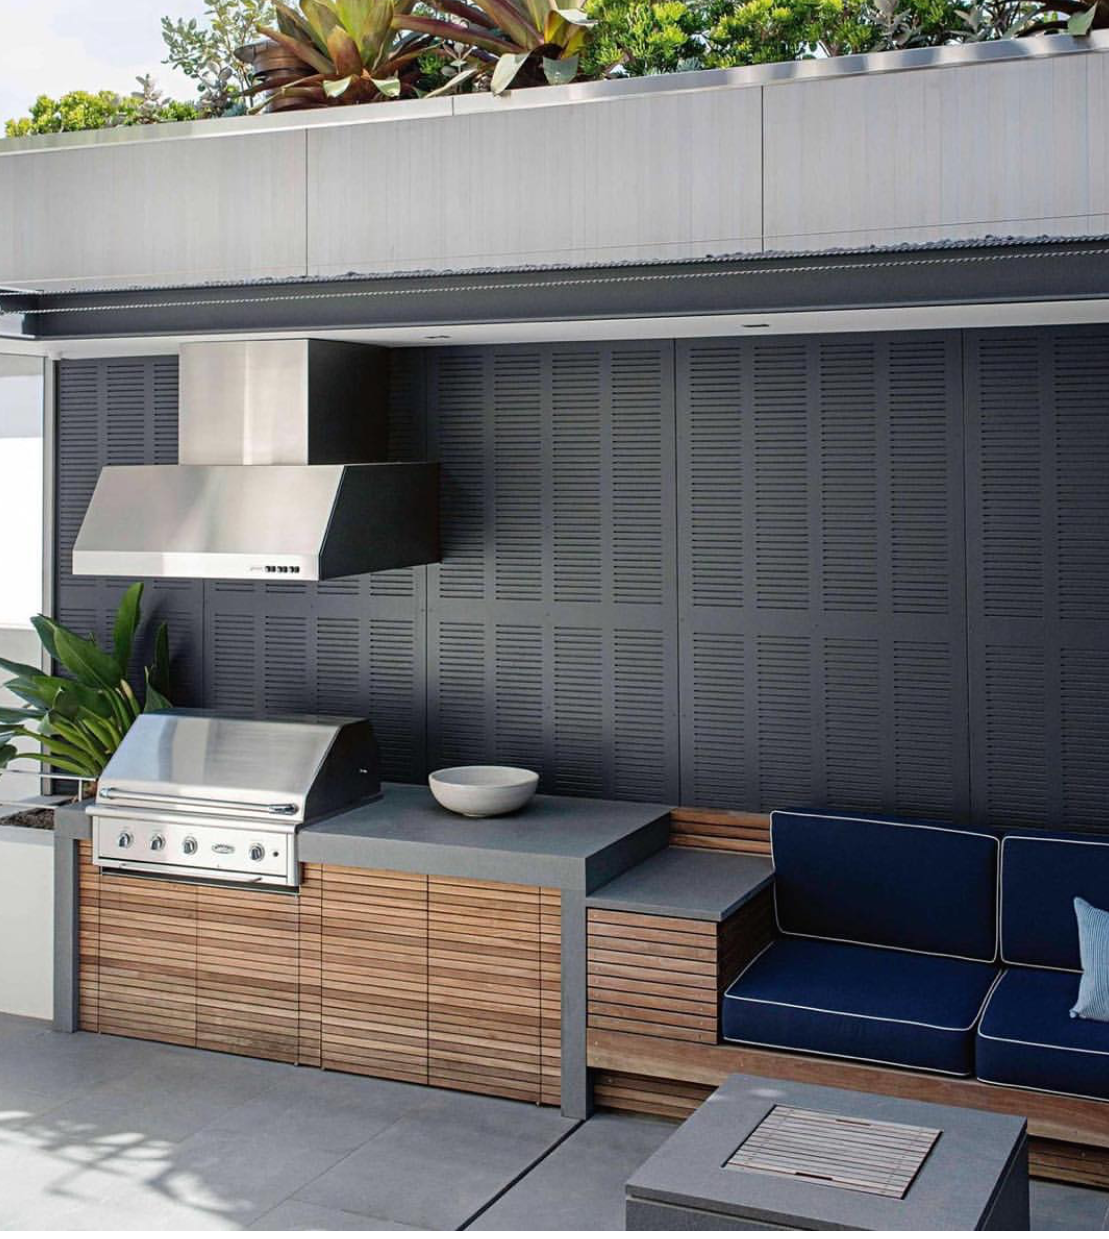 Best Built In Bbq Area Wood Accents Modern Built In Bbq 400 x 300